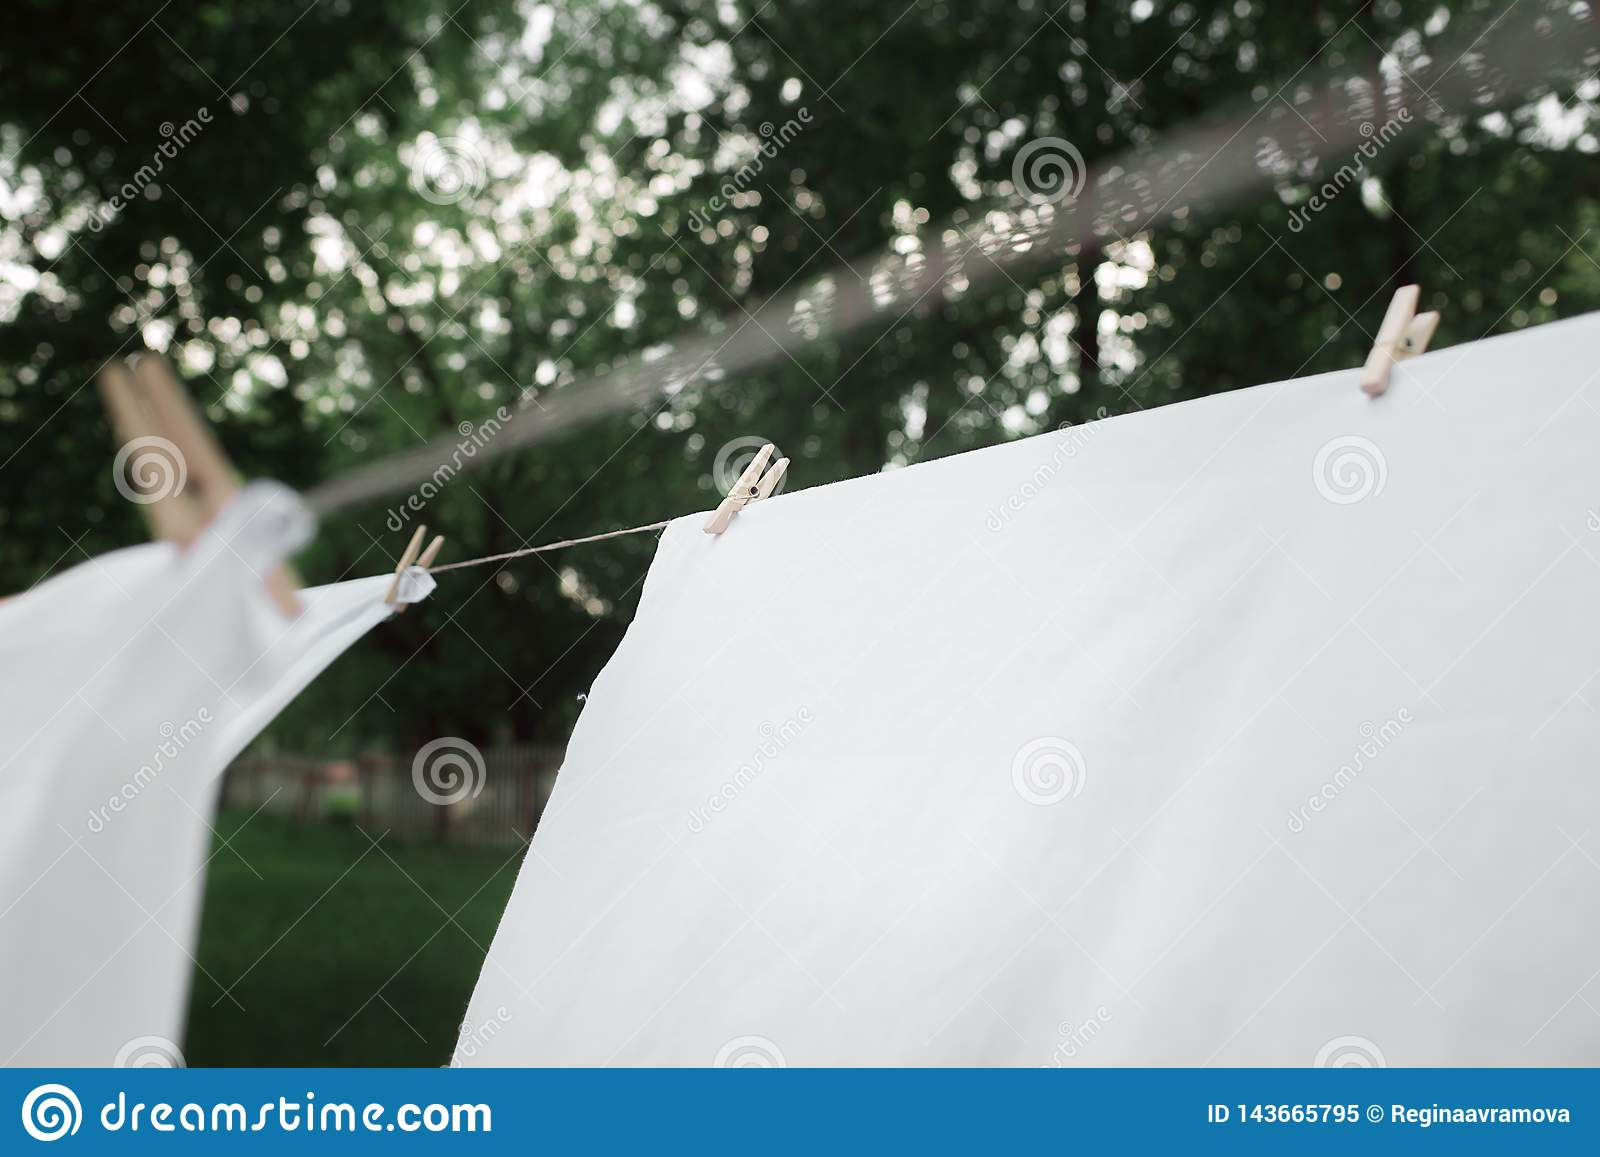 Washed towels are hanging on the rope. Linen is dried. Clothespin on a towel that is dried. Drying linen in the garden